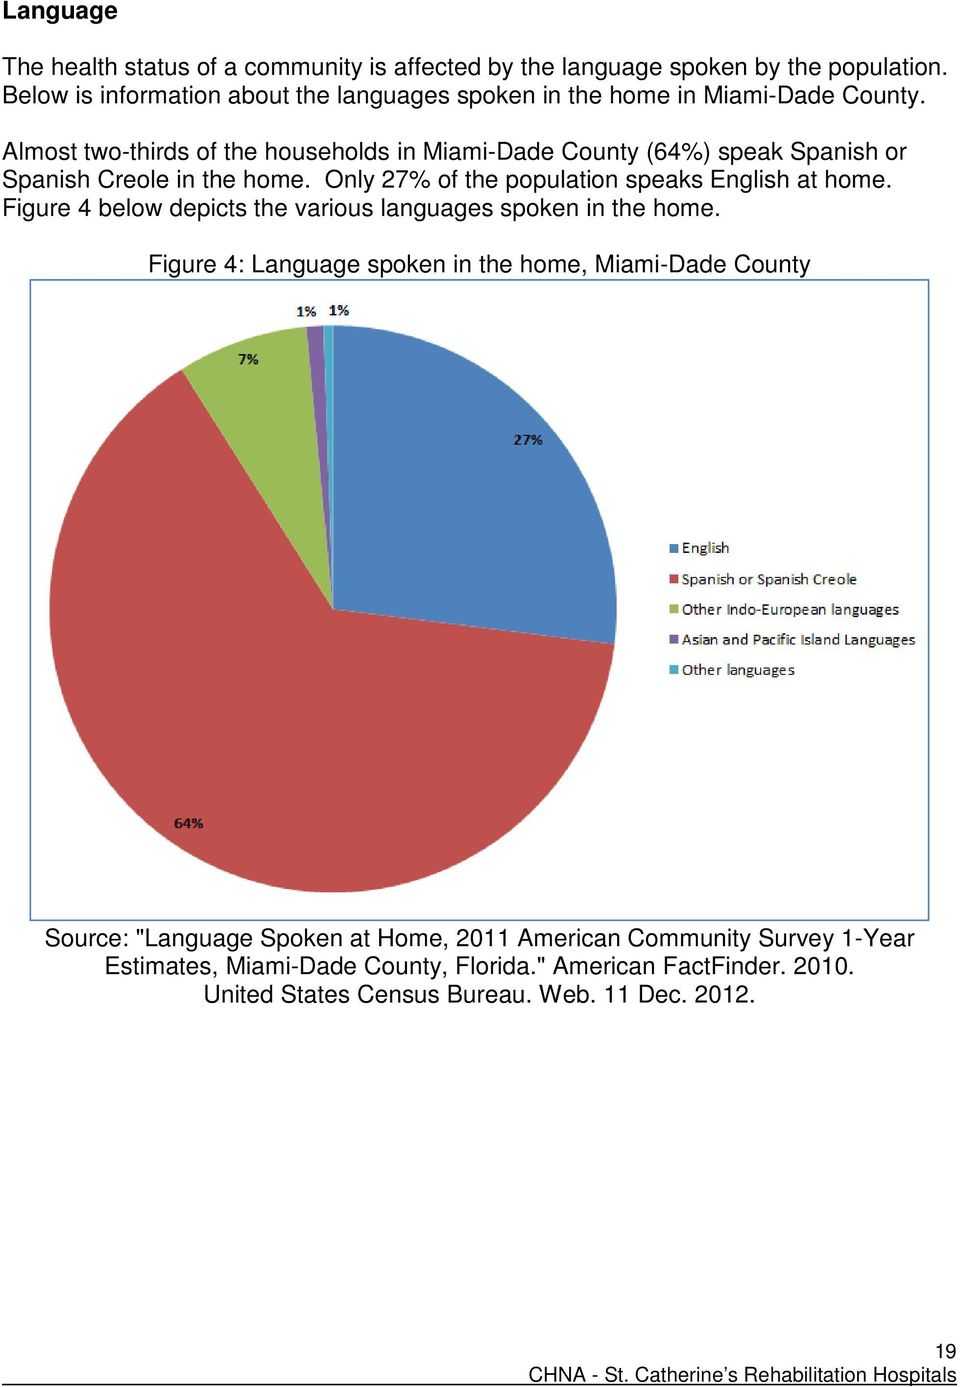 Almost two-thirds of the households in Miami-Dade County (64%) speak Spanish or Spanish Creole in the home. Only 27% of the population speaks English at home.